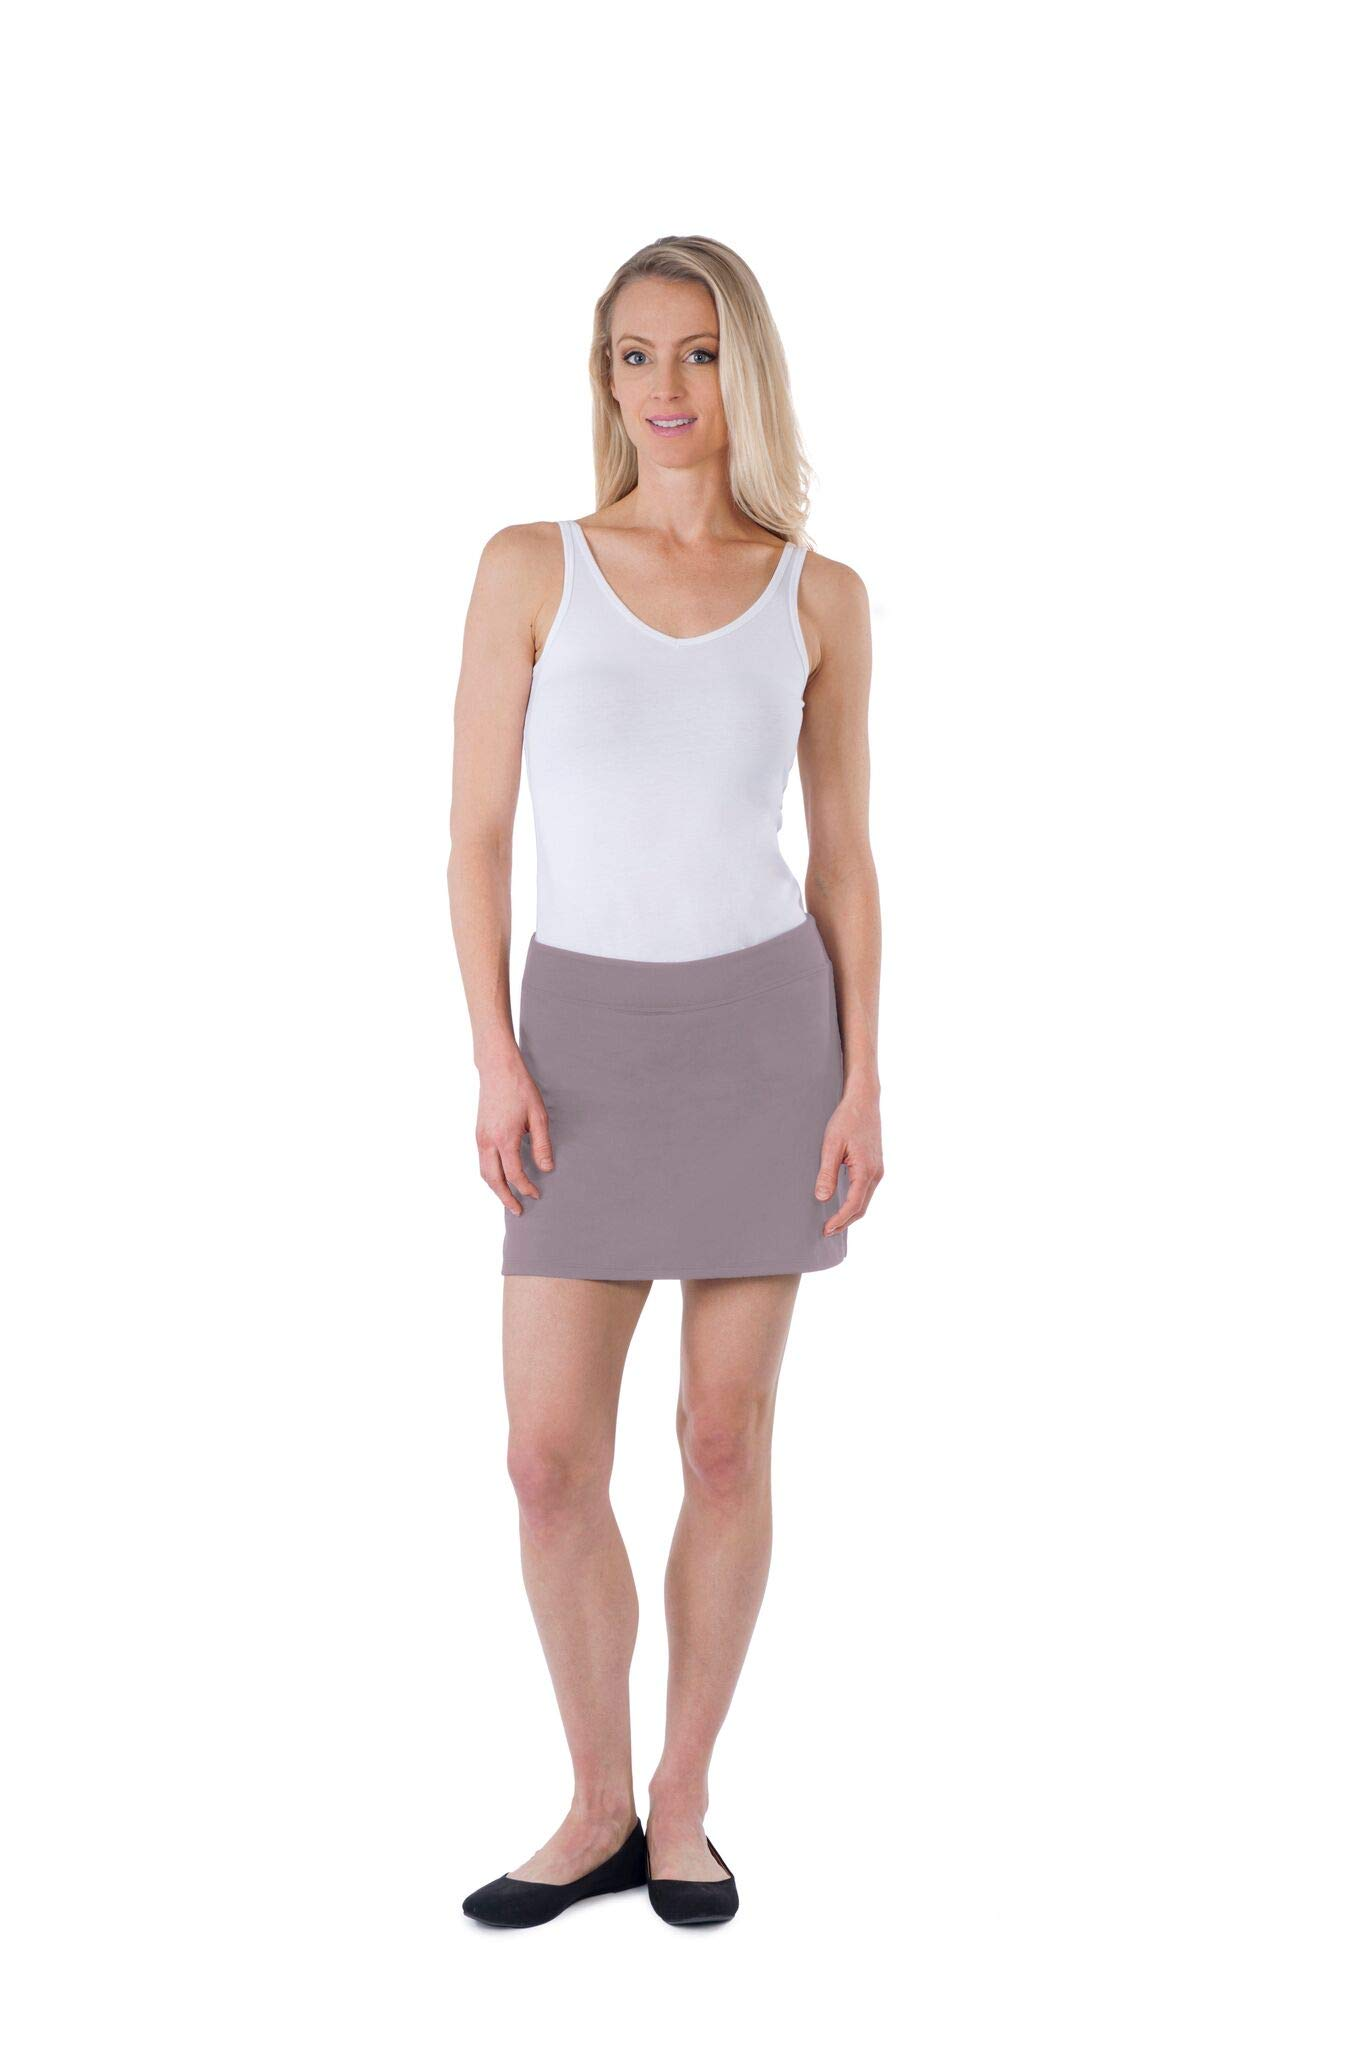 Colorado Clothing Women's Everyday Skort (Silver Lilac, S) by Colorado Clothing